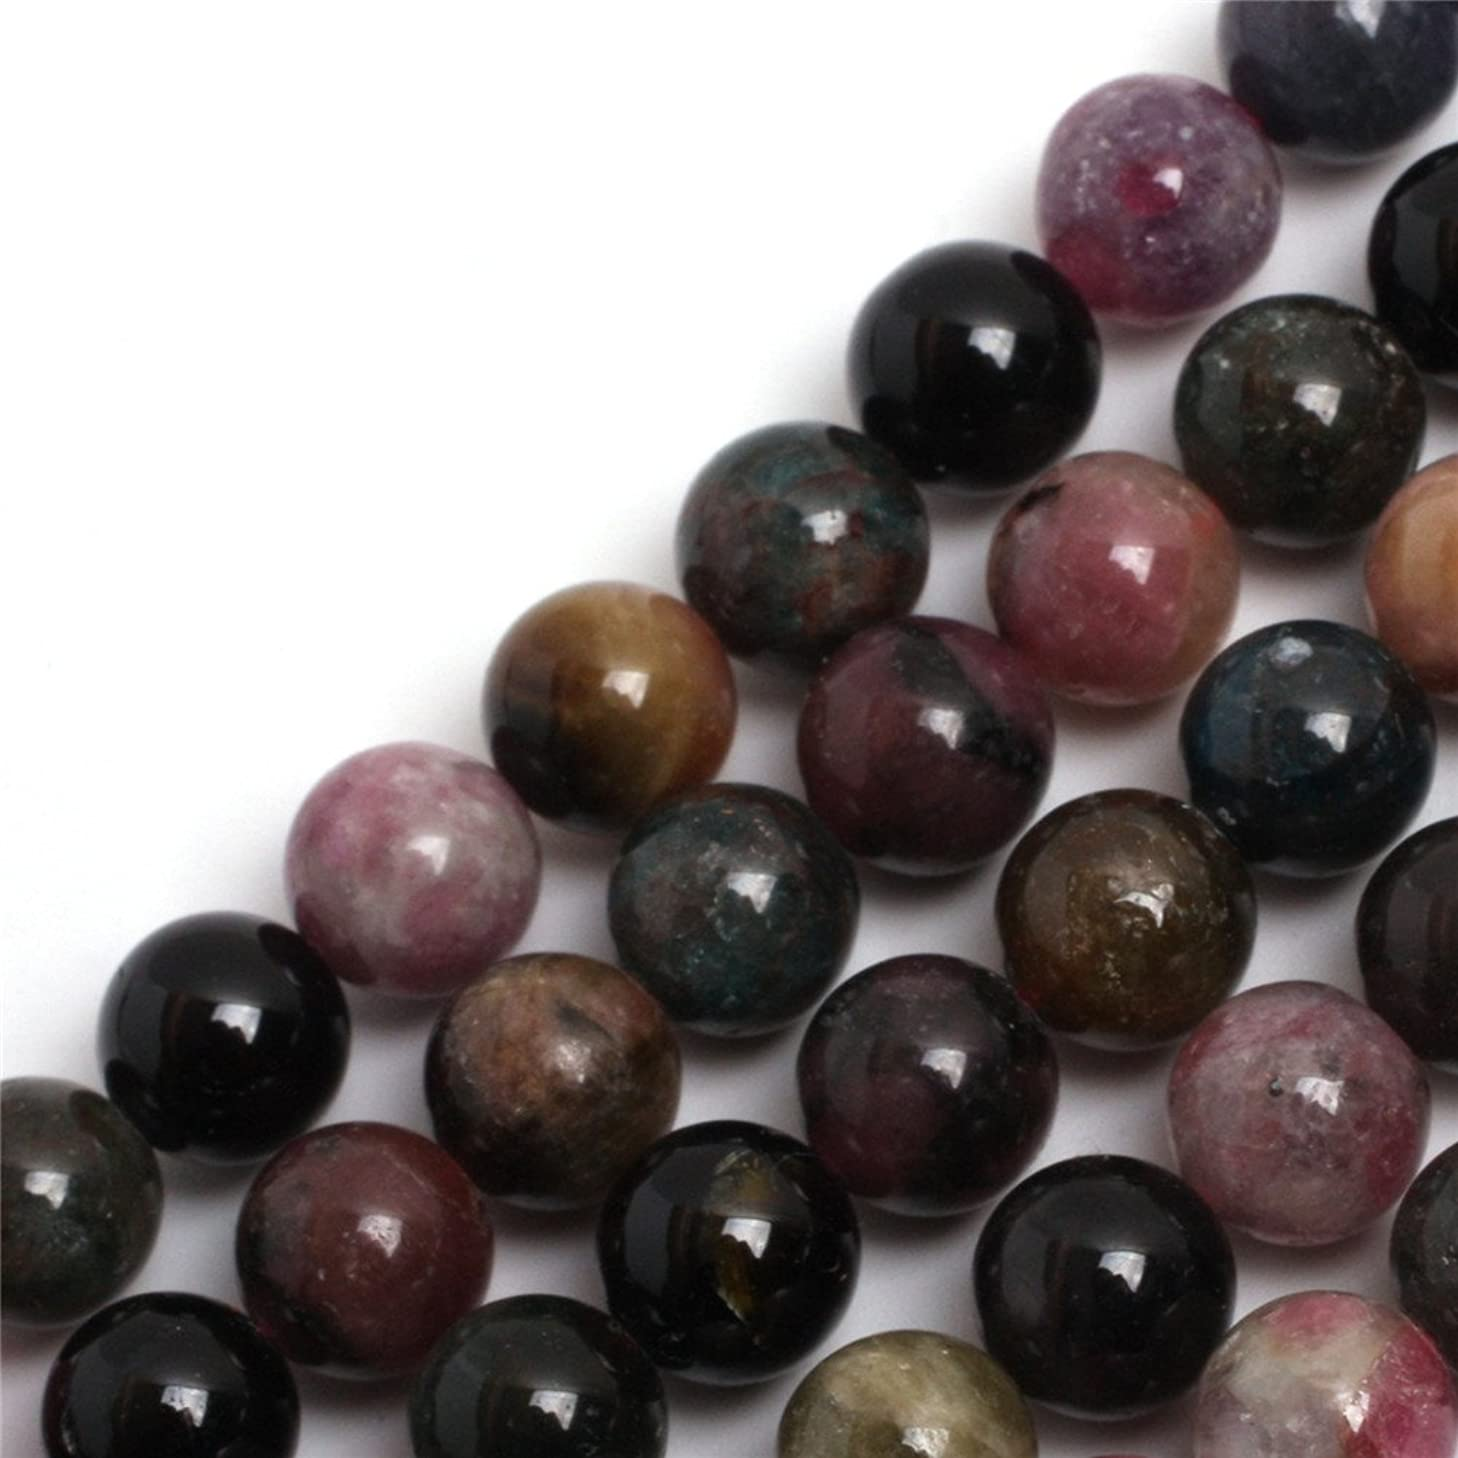 GEM-inside Tourmaline Gemstone Loose Beads Natural Round 10MM Crystal Energy Stone Power For Jewelry Making 15